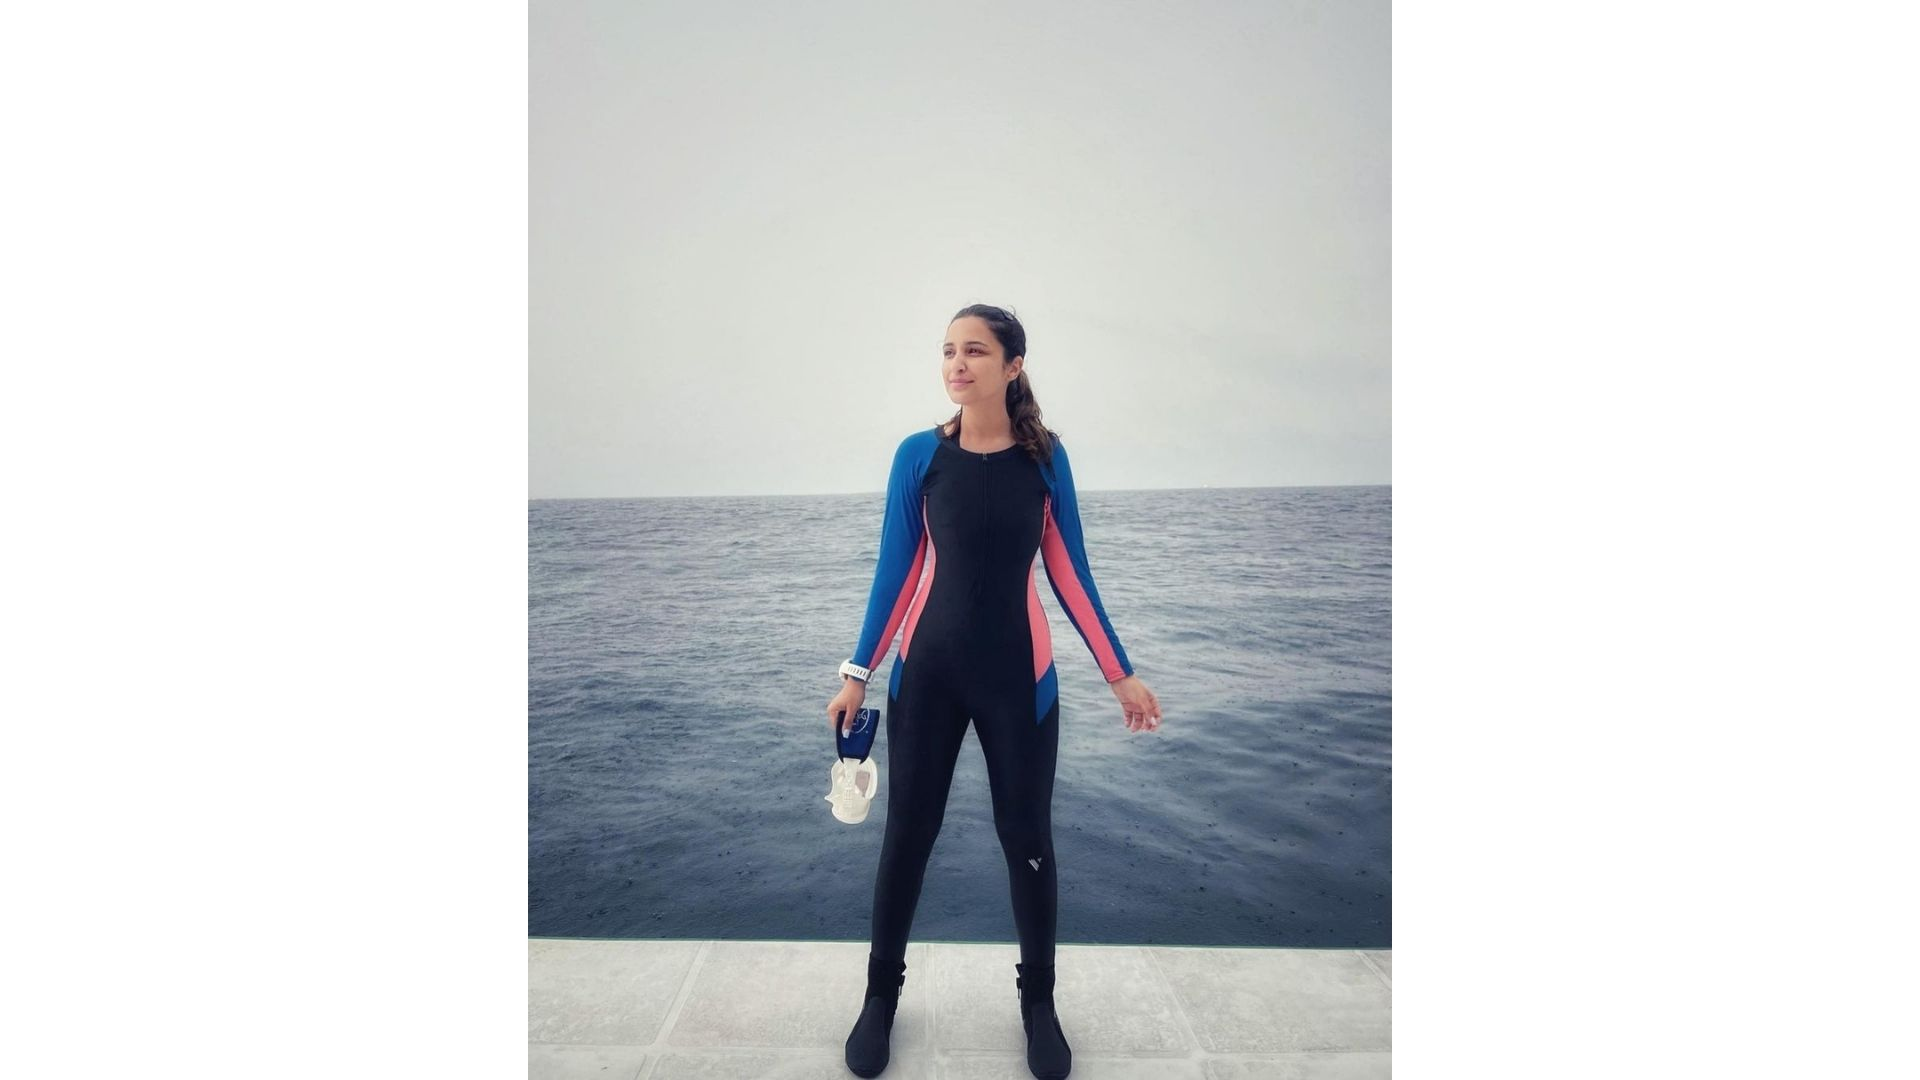 Parineeti Chopra Stuns Netizens With Her Scuba Diving Skills And Calls It A 'Meditation'; See What She Signals Underwater